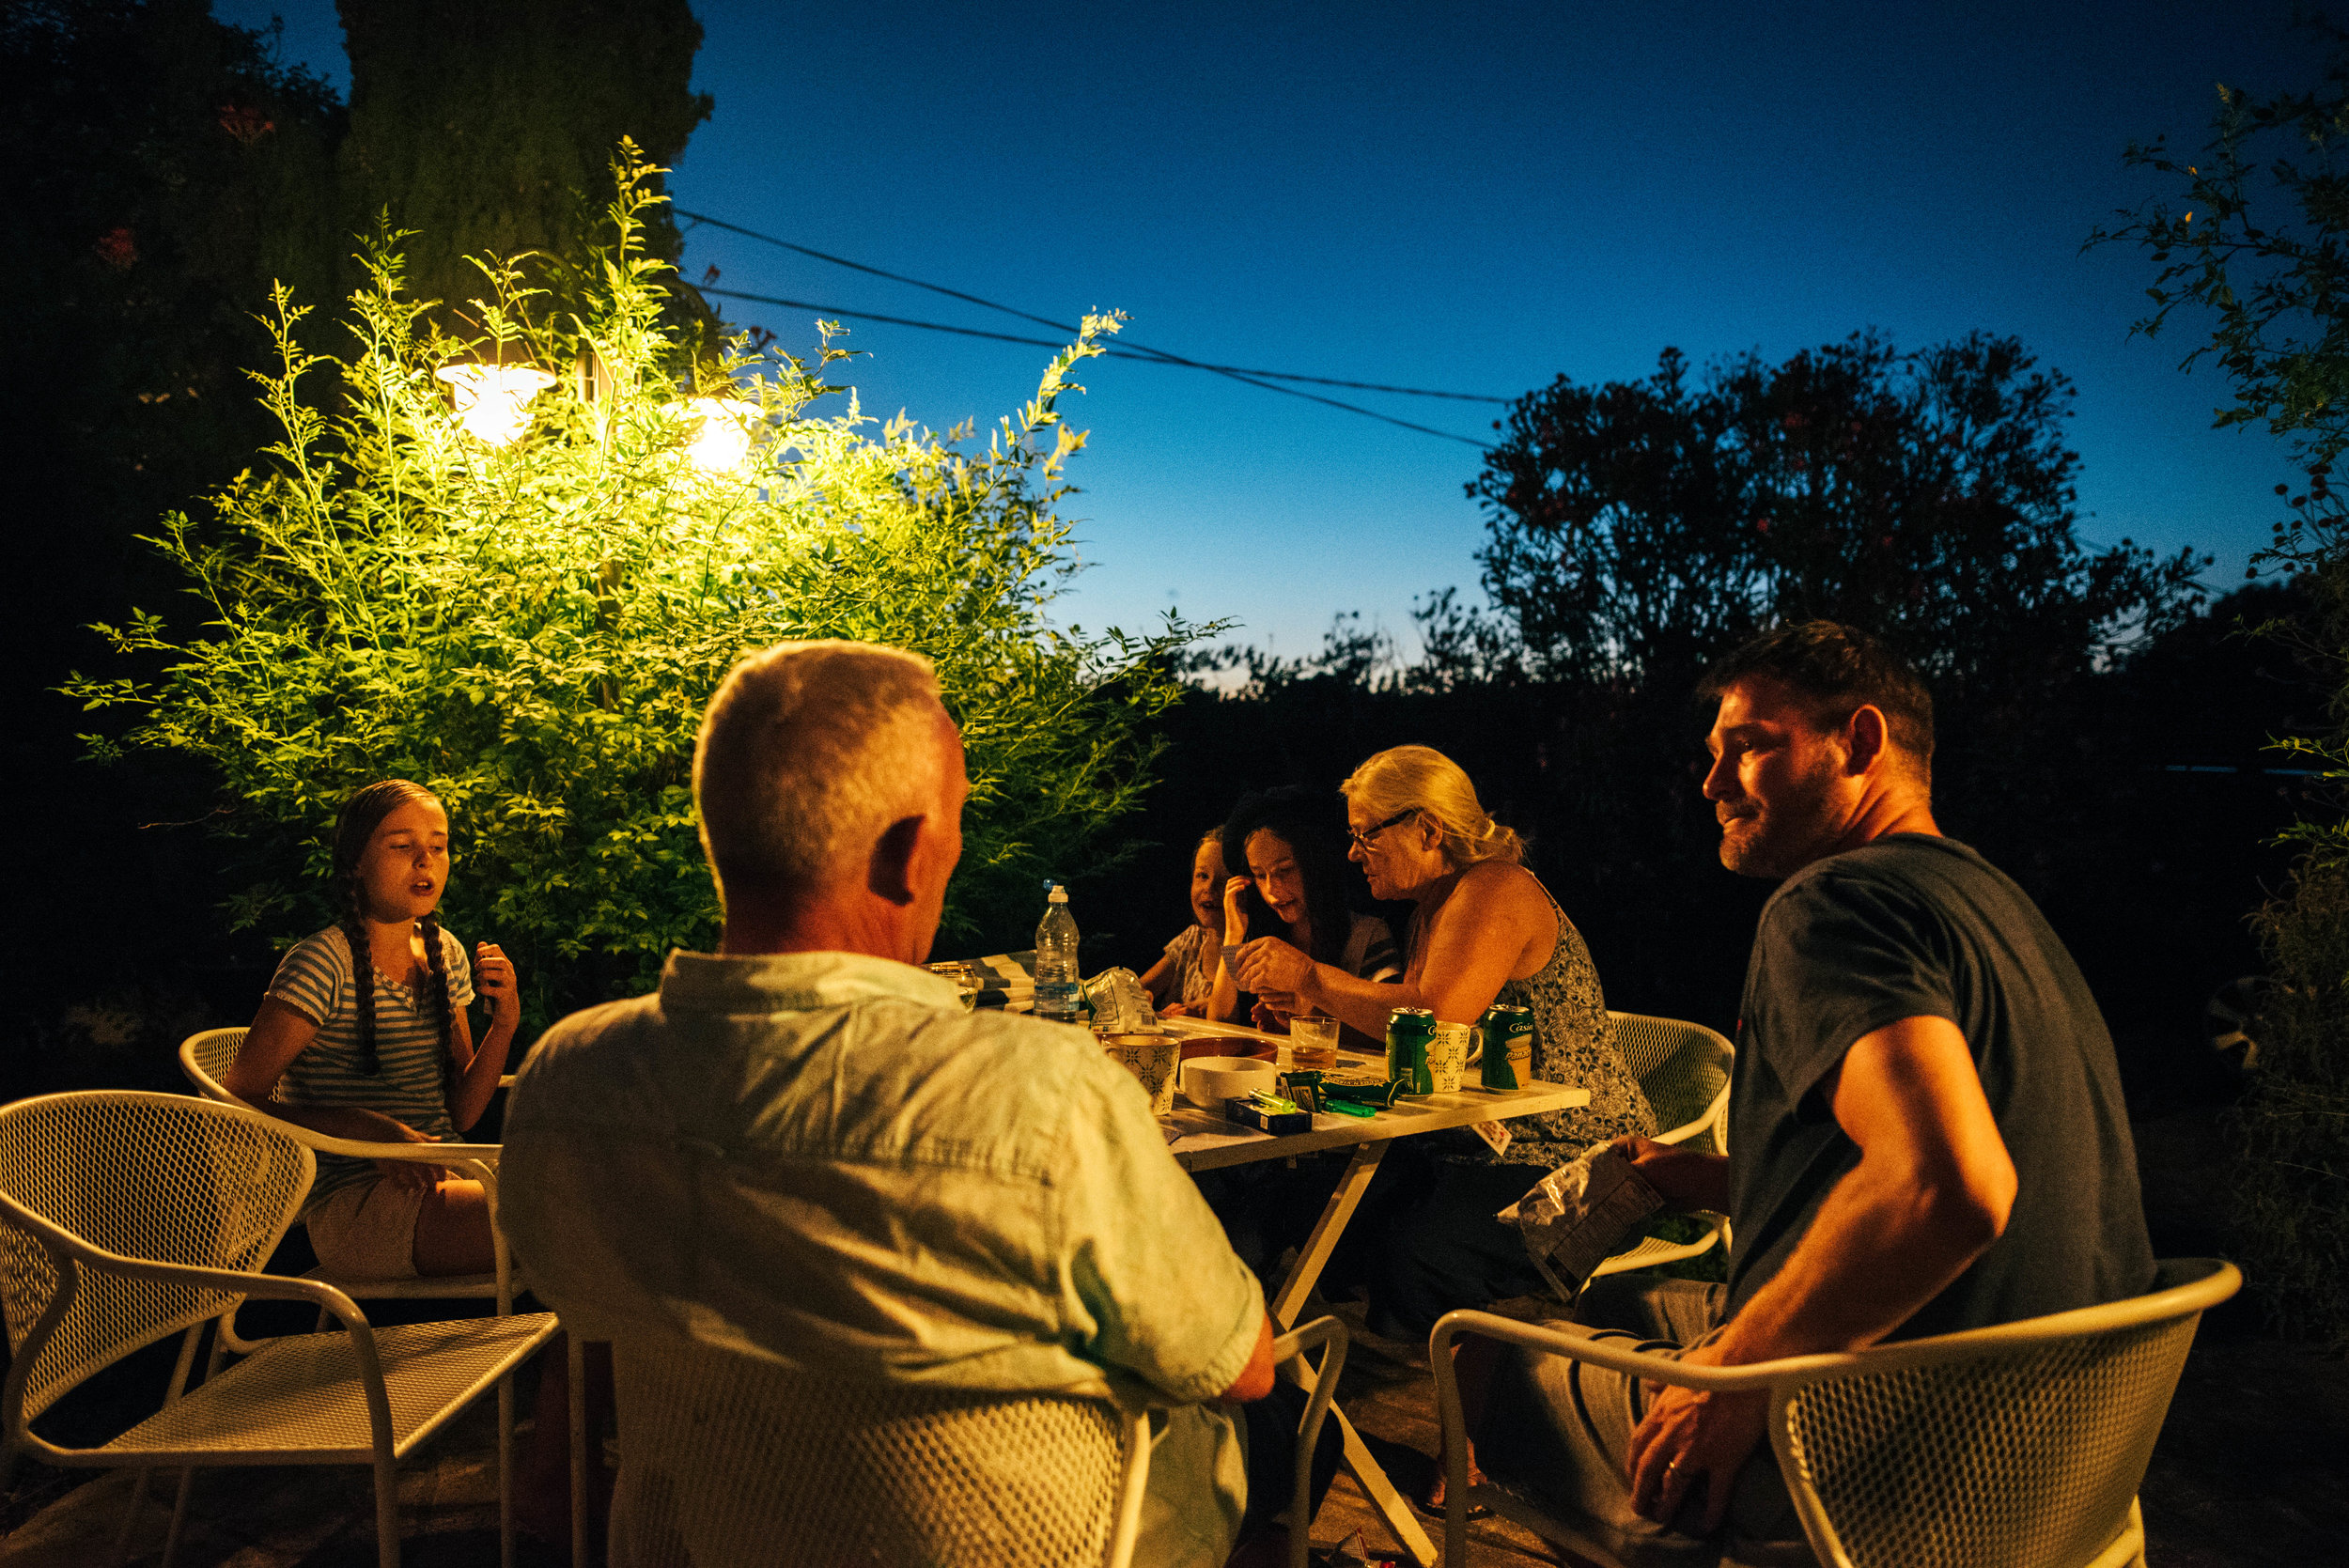 family play cards in garden at night Essex UK Documentary Portrait Photographer